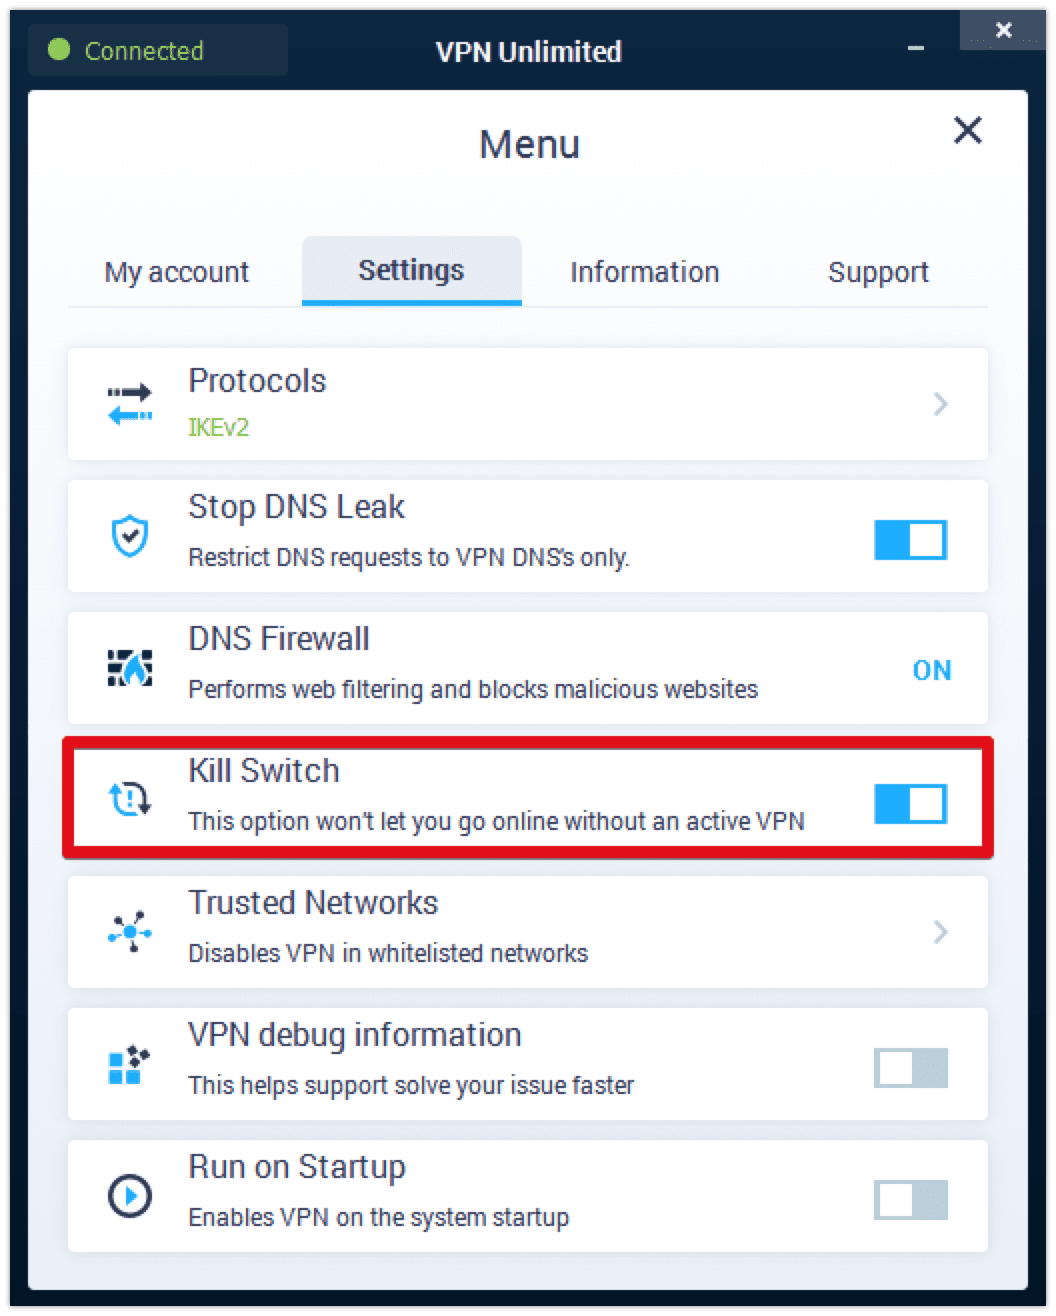 The Kill Switch feature in VPN Unlimited on Windows